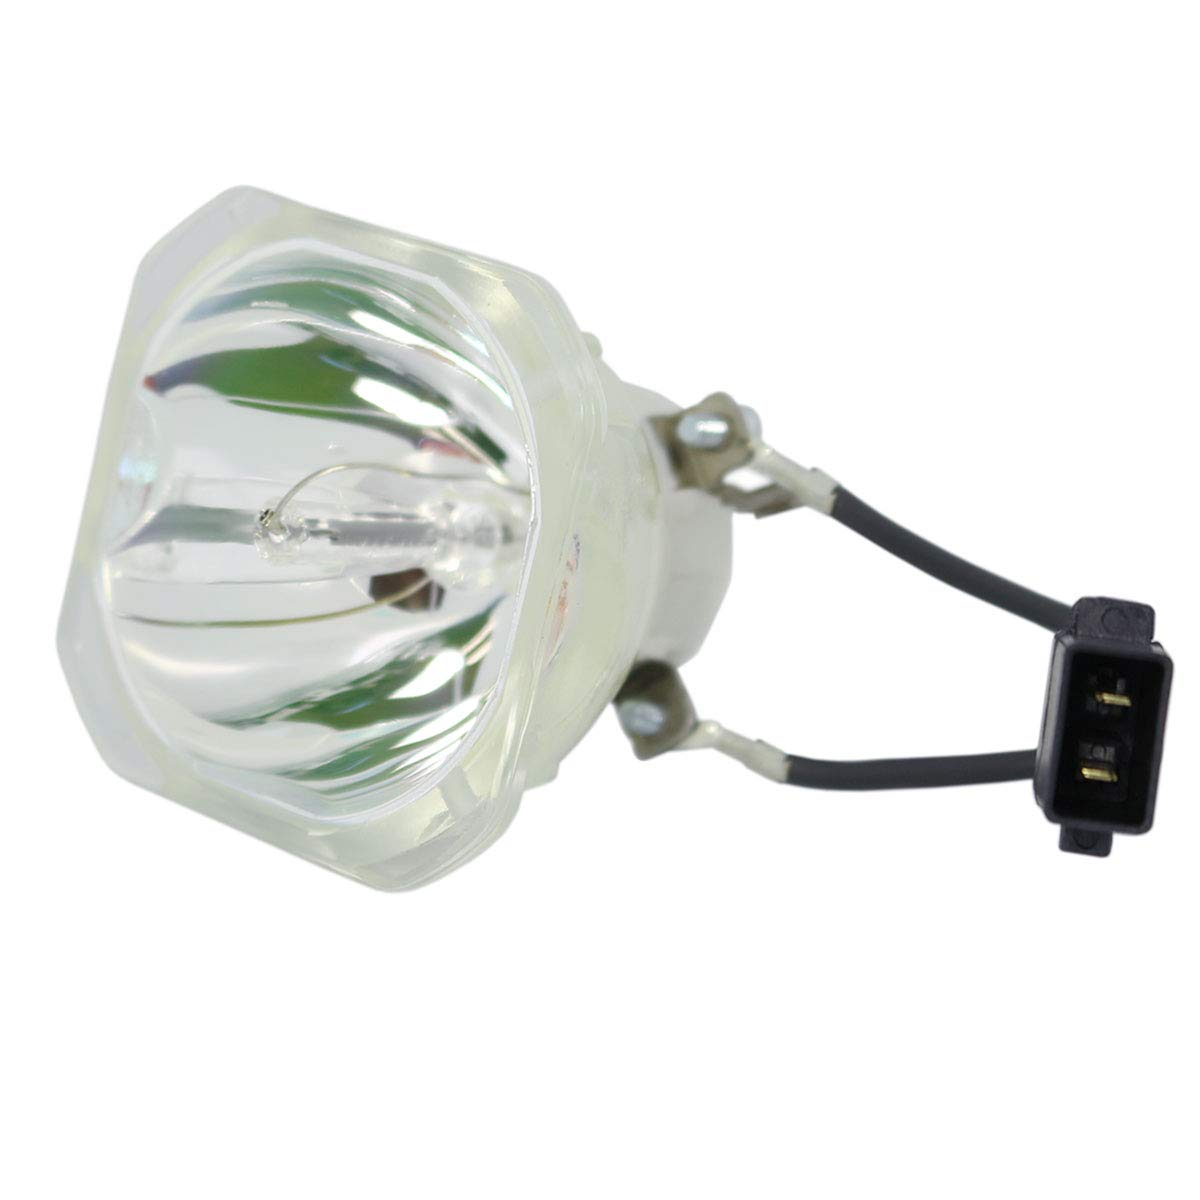 Ceybo Elplp88 Replacement Bare Lamp Bulb For Epson Eb S300 Projector Electronics